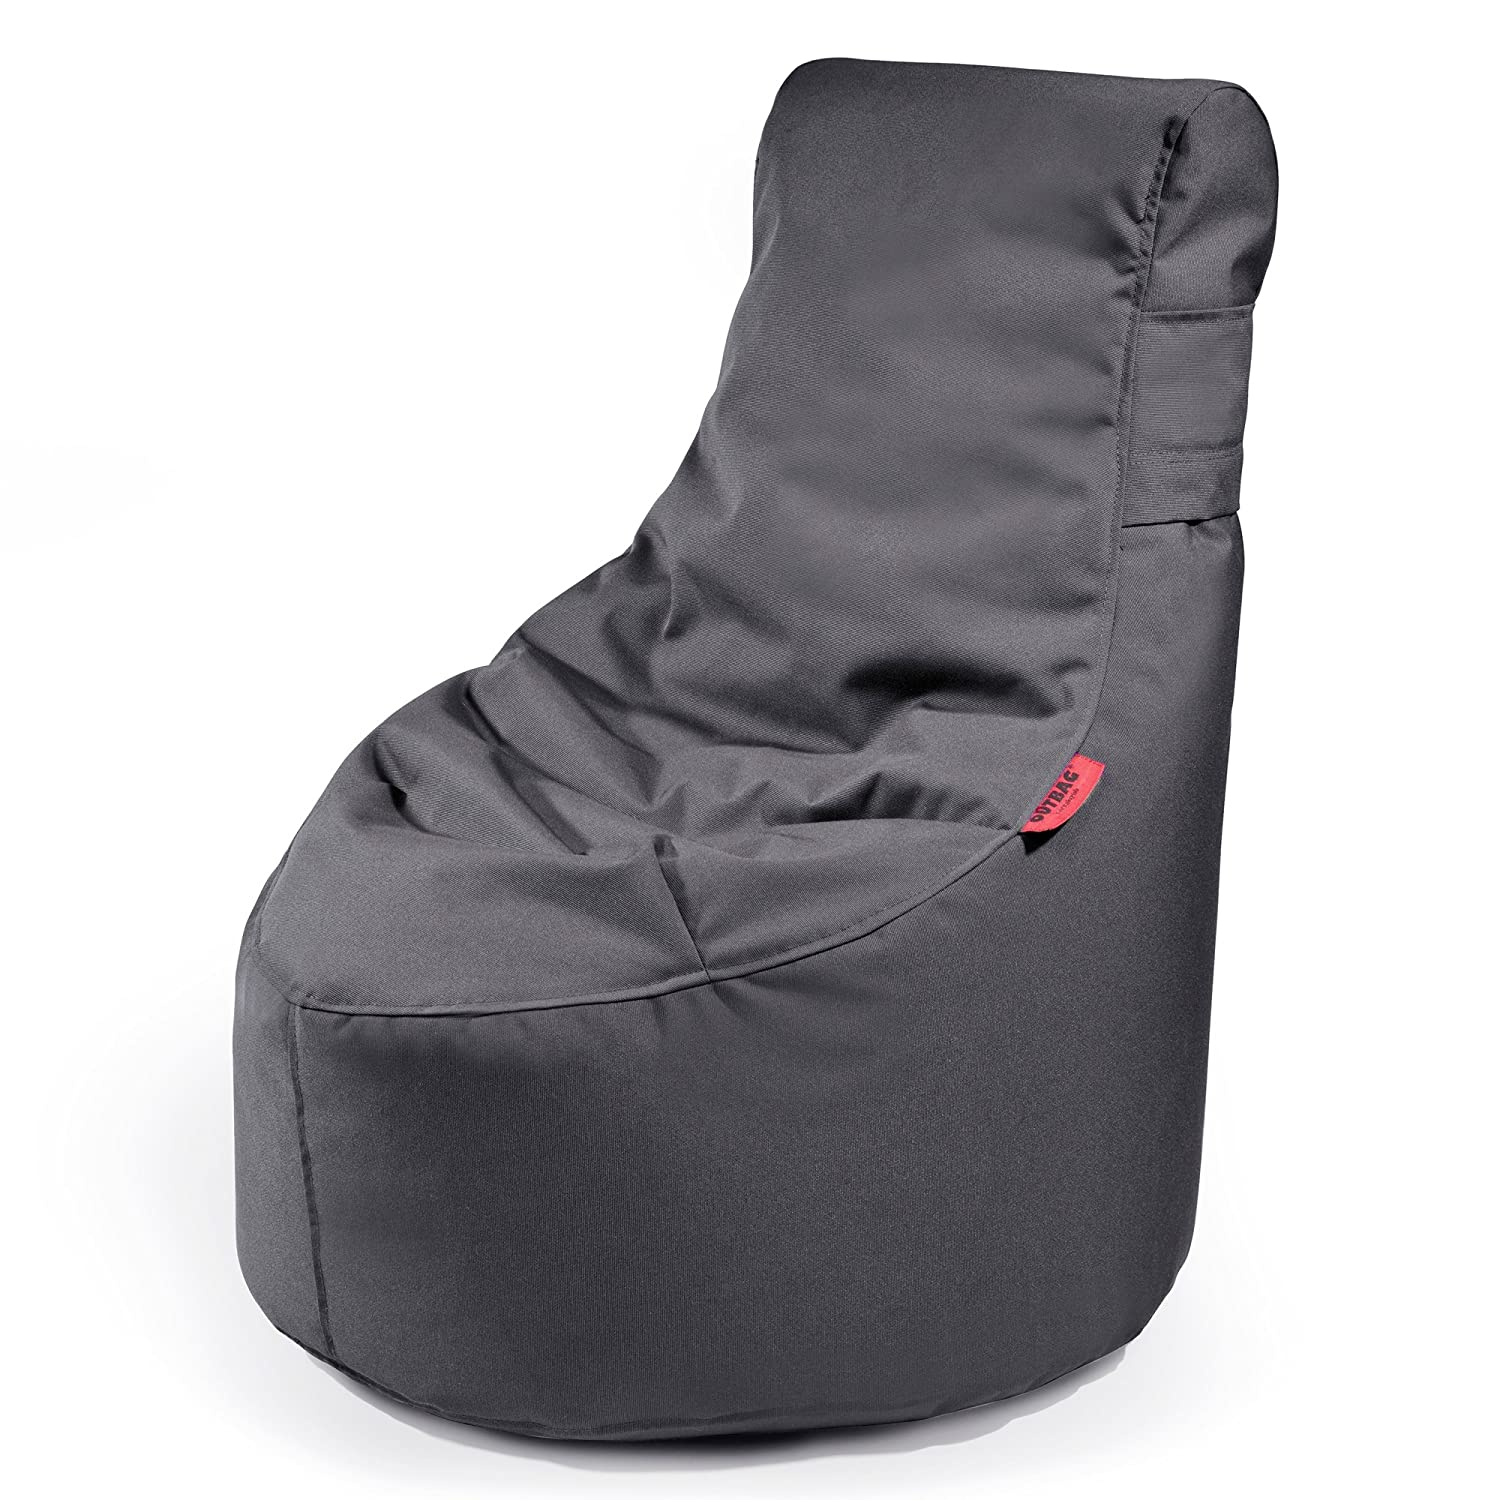 Outbag 01SLS-PLU-ant Slope Plus XS Outdoor Sitzsack / Sessel - Anthrazit